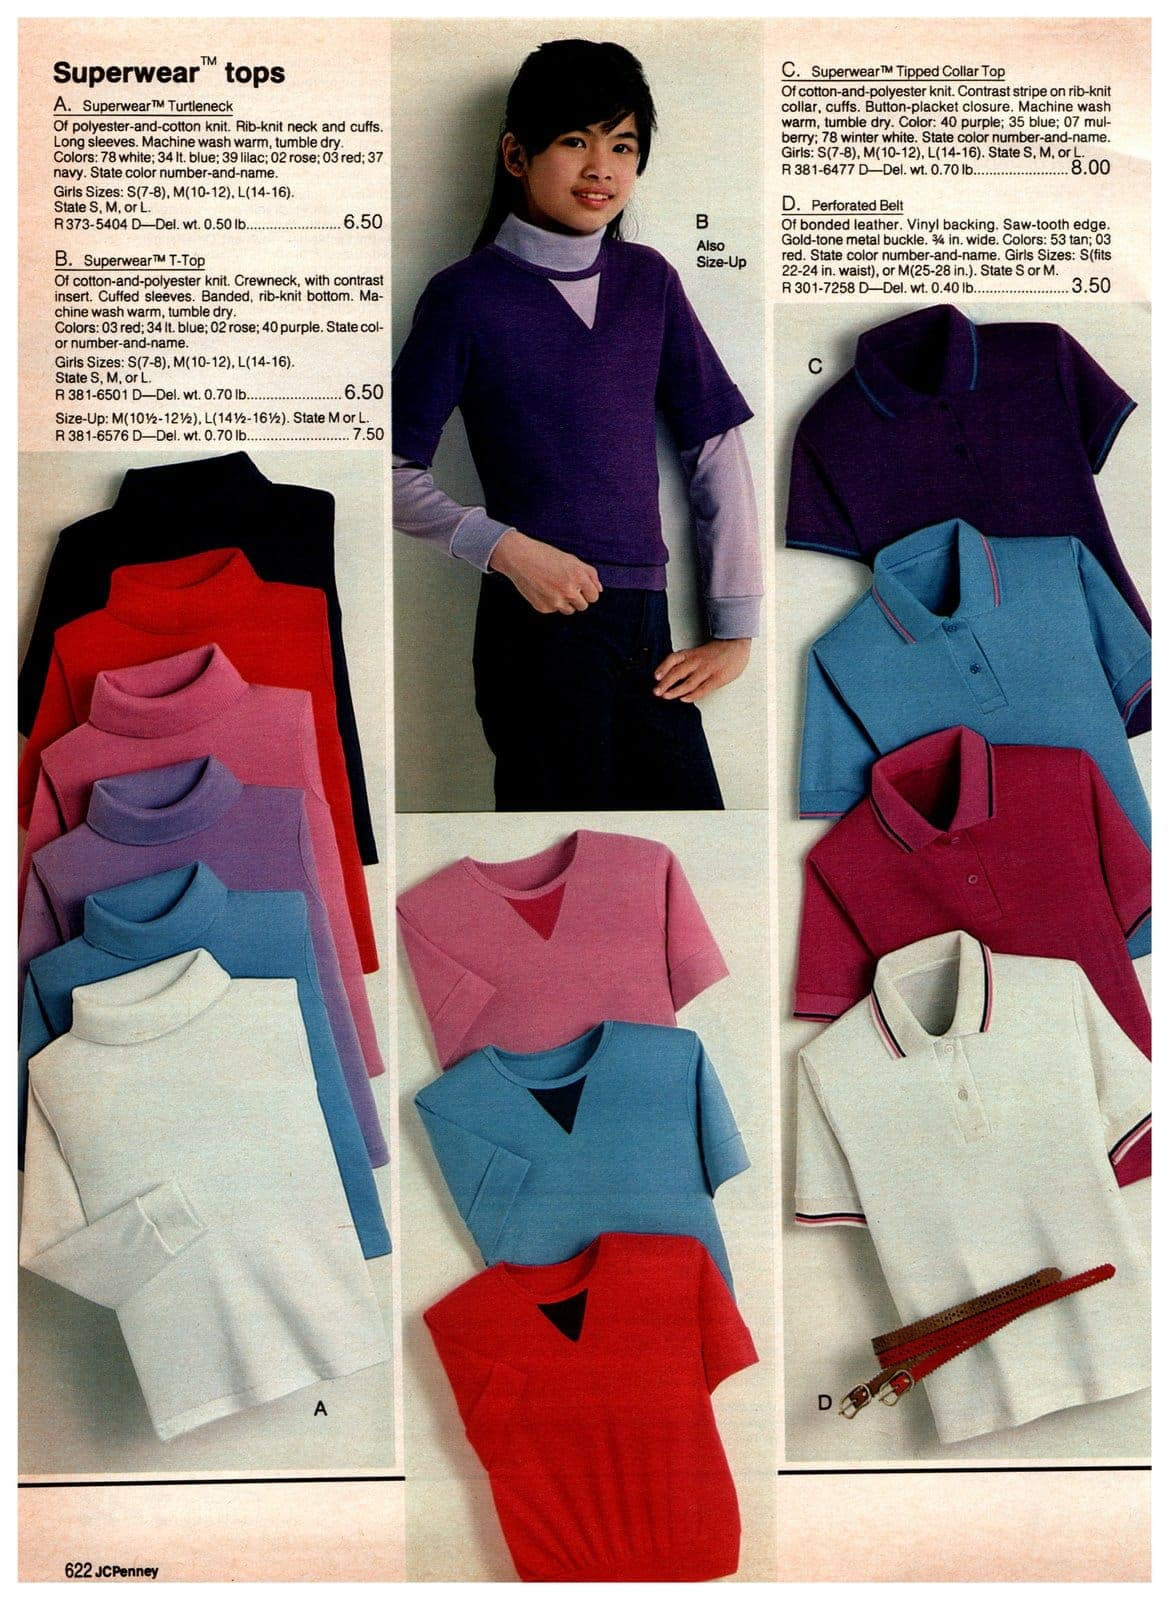 Superwear '80s tops for girls - turtlenecks, tees, tipped collar tops, polos and more